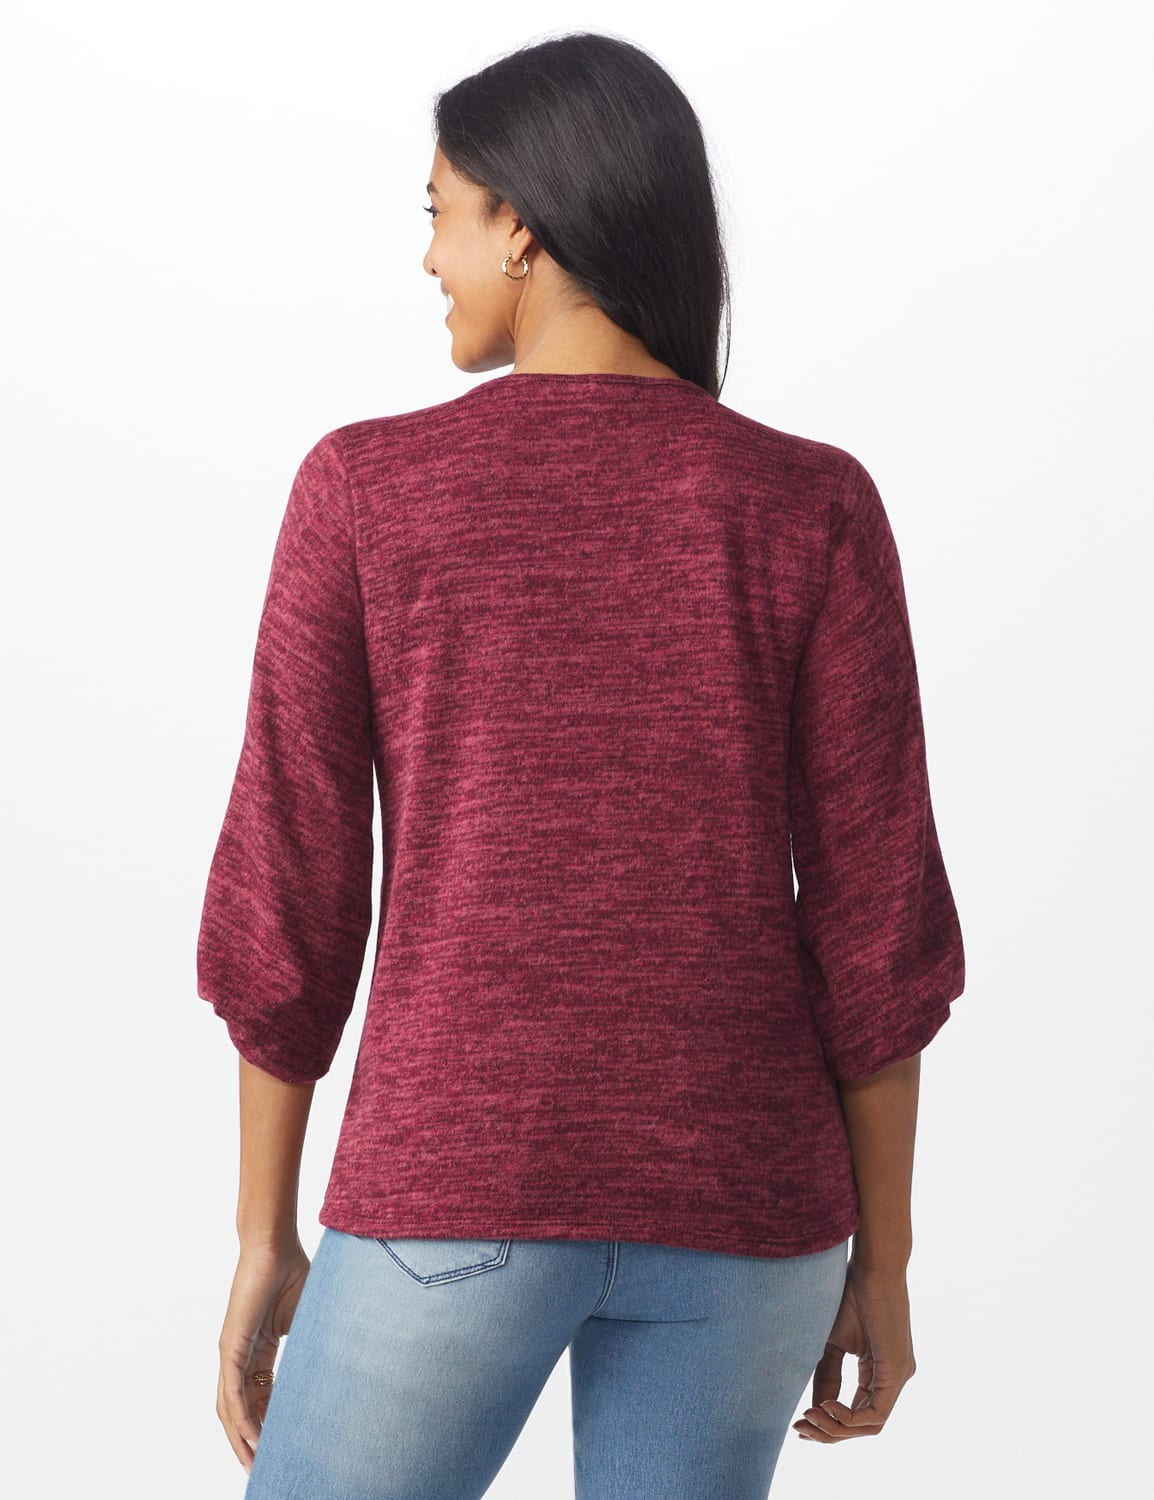 Button Shoulder V-Neck Hacci Top - Misses - Burgundy - Back